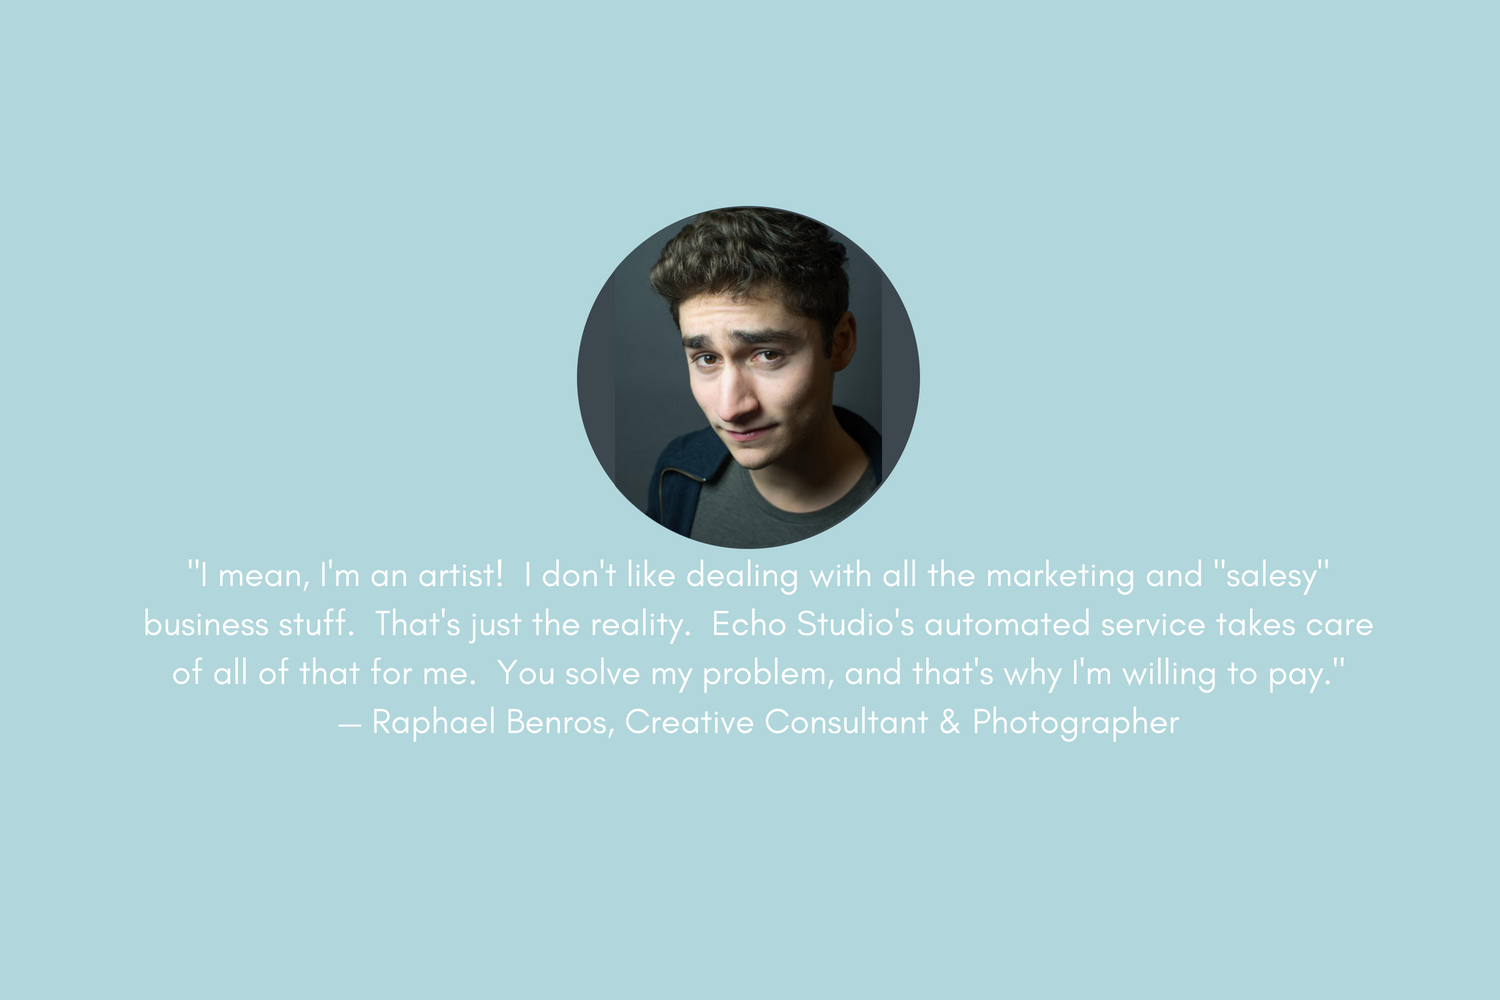 adrien-harrison-echo-studio-clients-testimonials-raphael-benros-team-acting-consulting-photographer-raphaelbenros.png